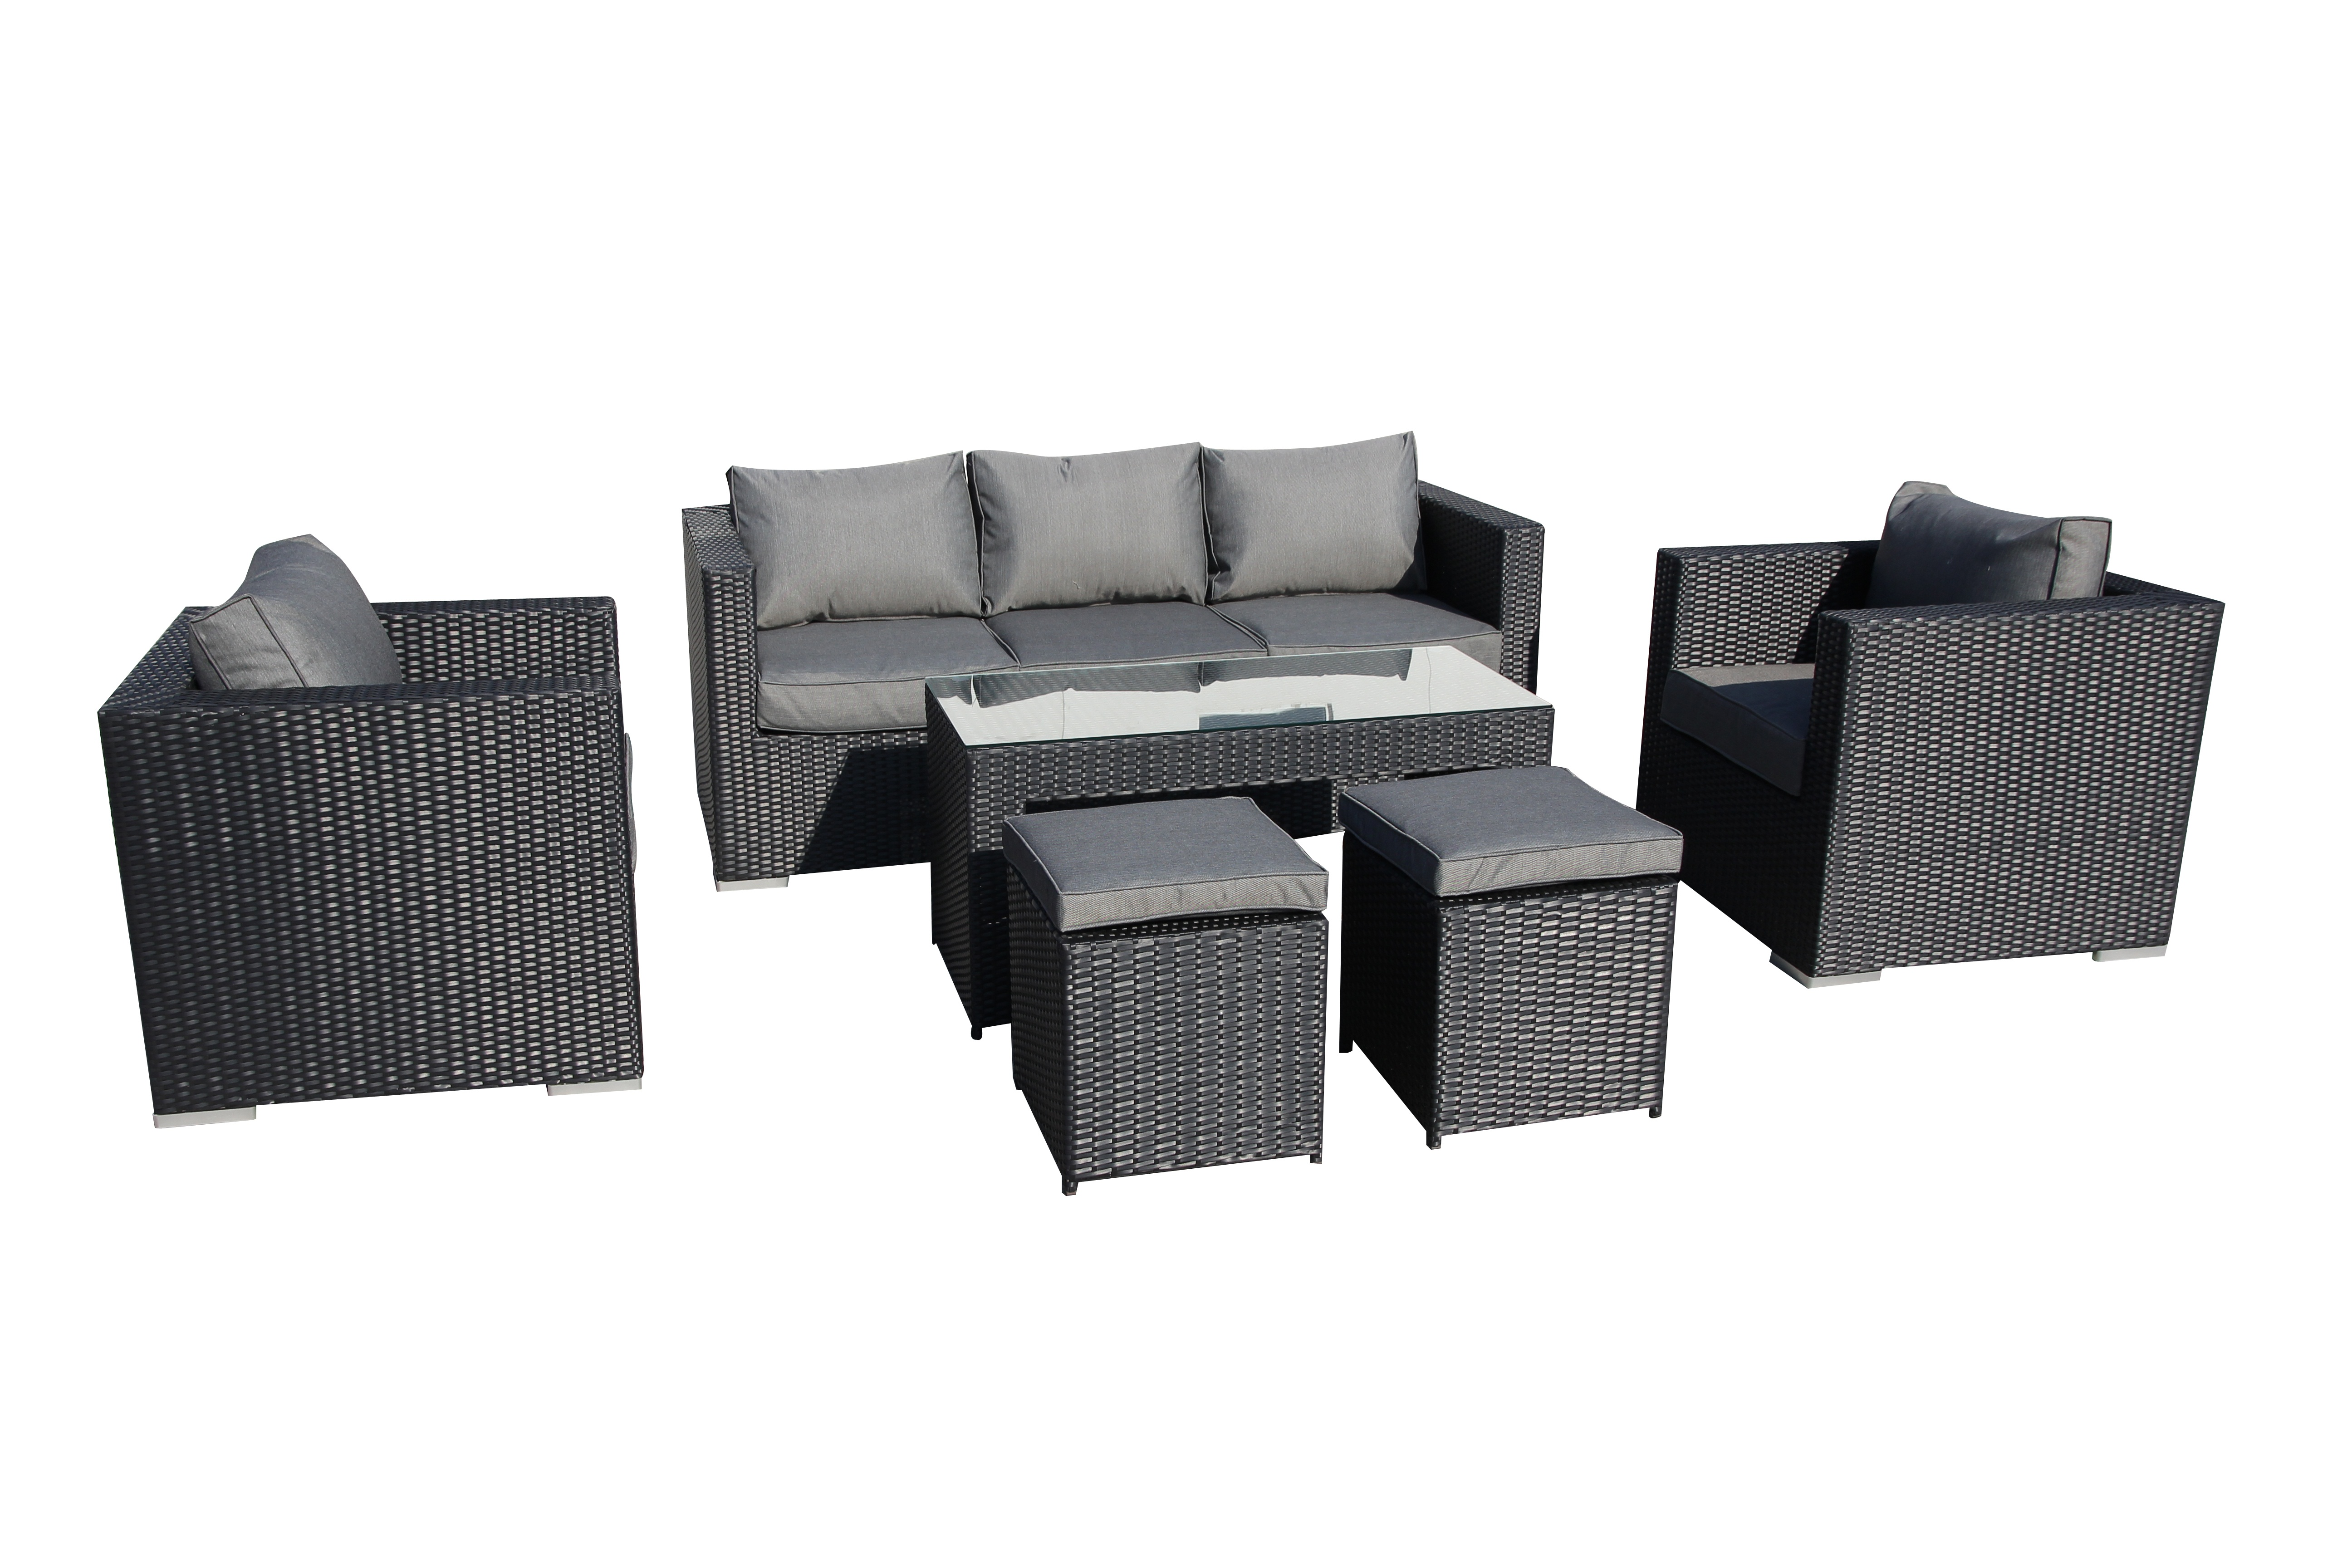 padang wicker rattan sofa lounge indoor outdoor patio couch 2 colours 6pc set ebay. Black Bedroom Furniture Sets. Home Design Ideas